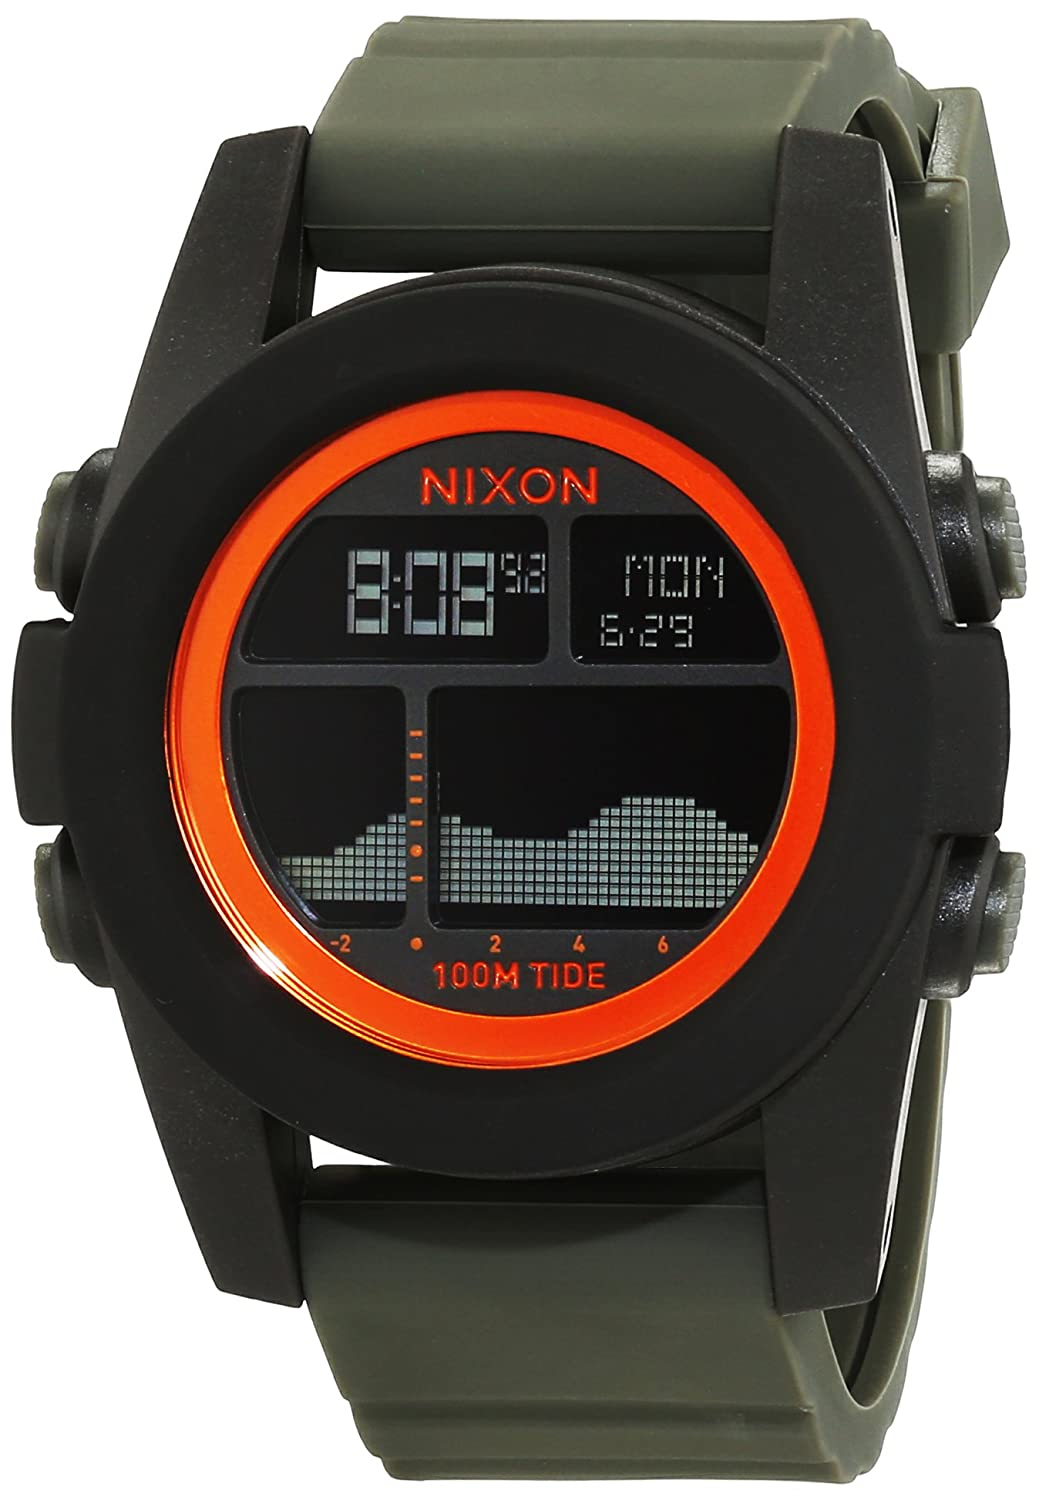 NIXON Unit Tide Fall Winter 16-17